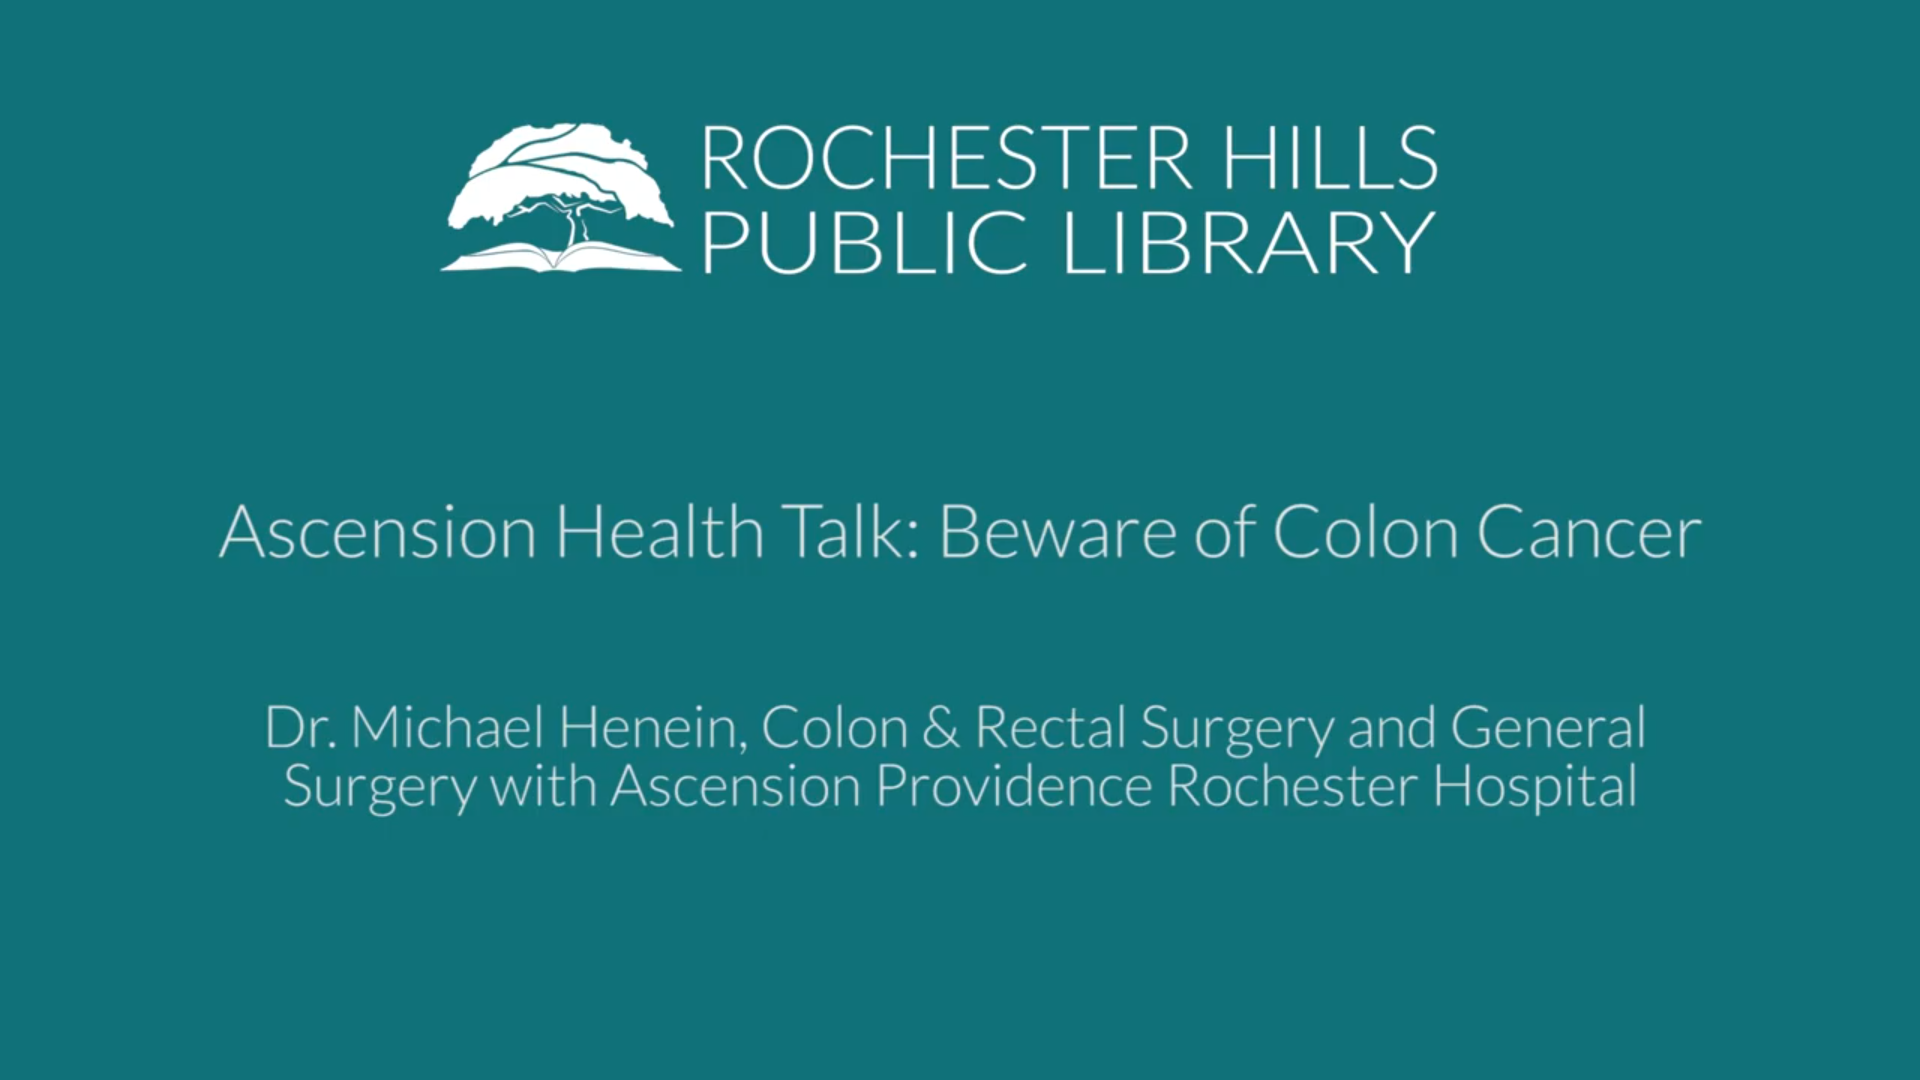 Ascension Health Talk: Beware of Colon Cancer